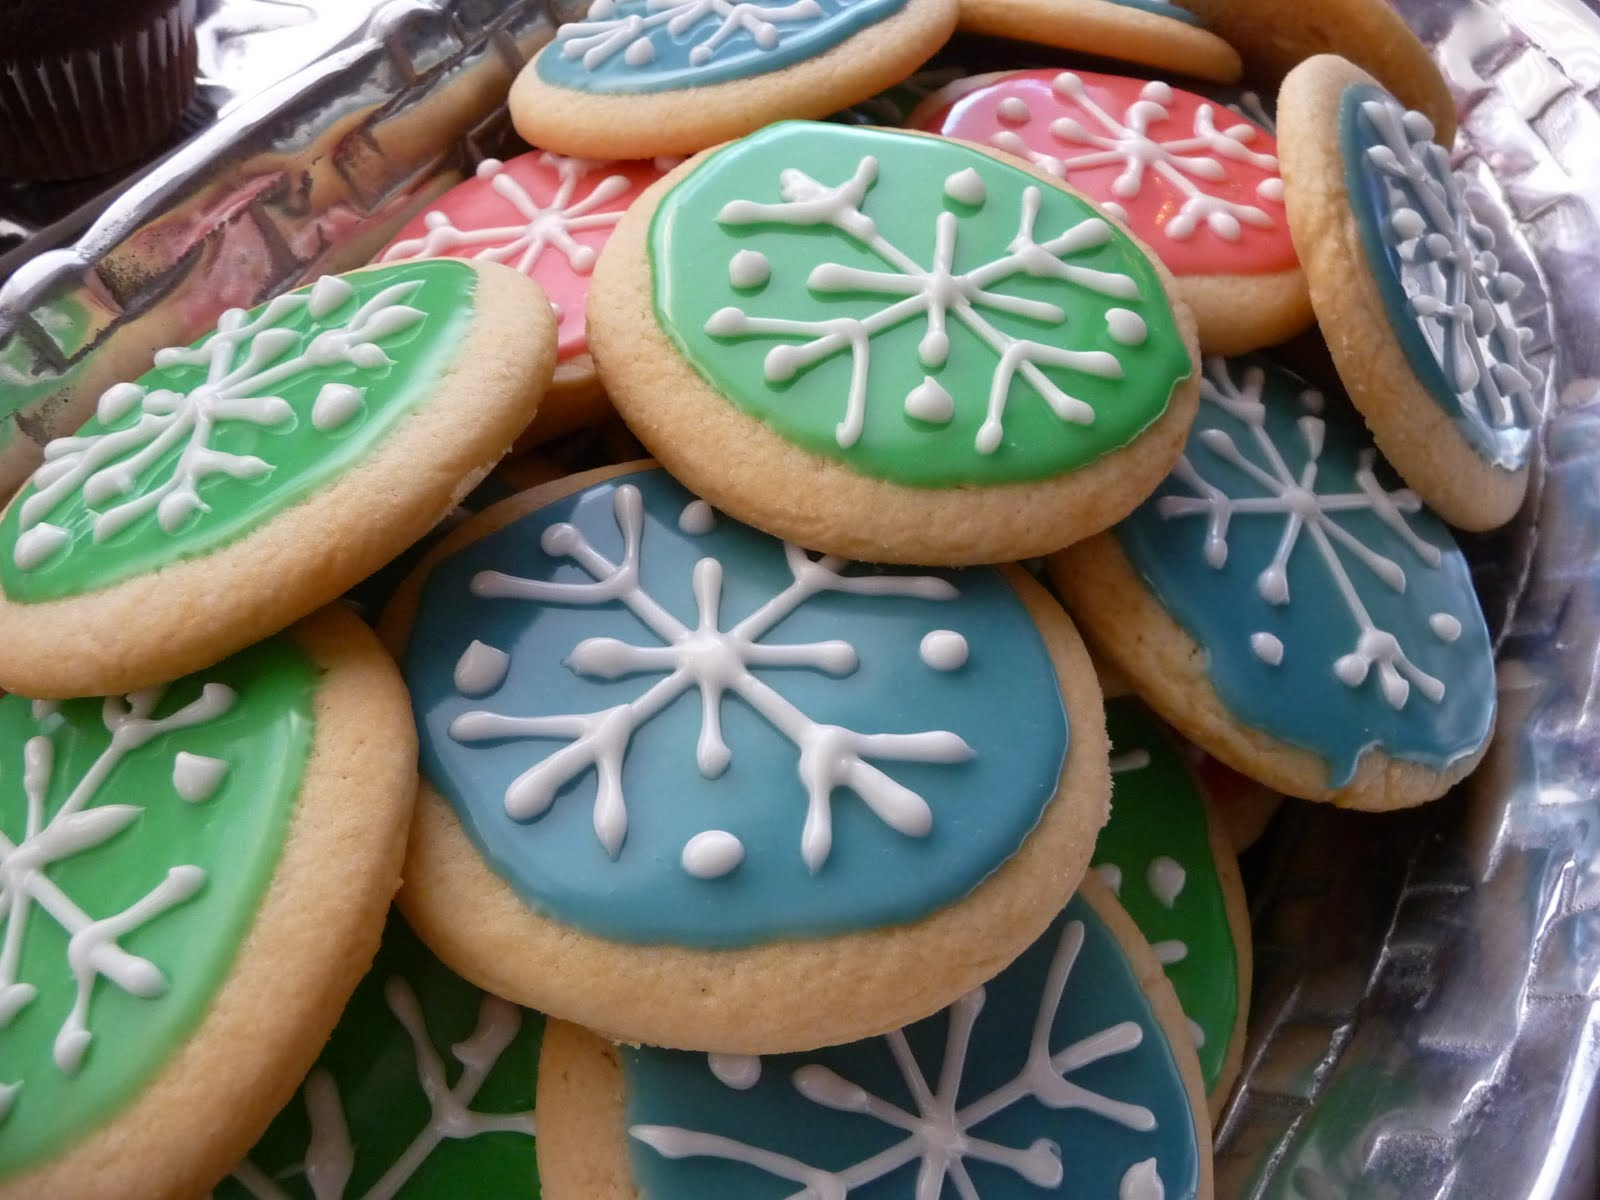 ... icing royal icing white icing royal icing royal icing easy cookie